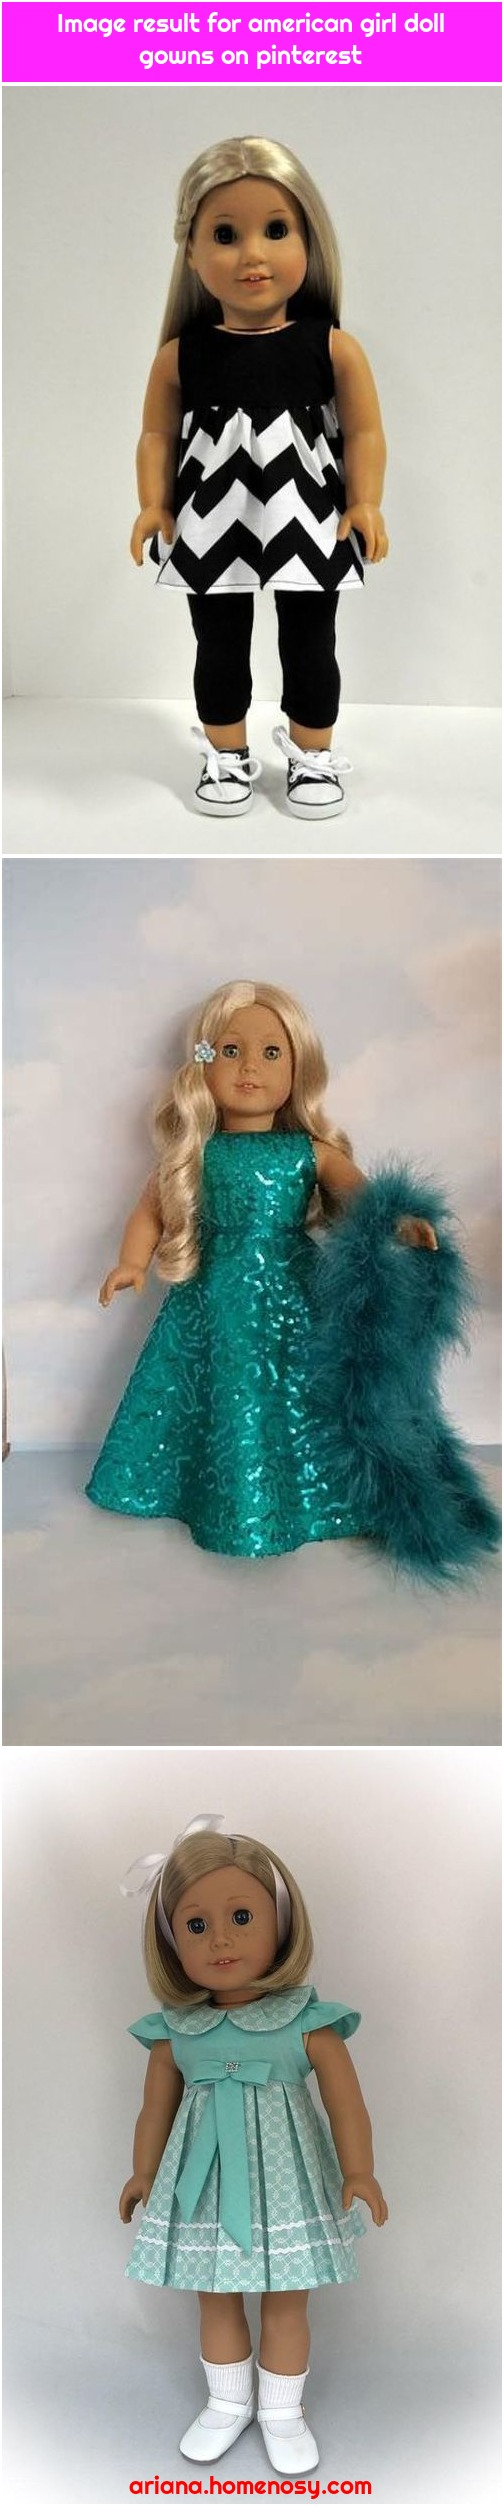 Image result for american girl doll gowns on pinterest